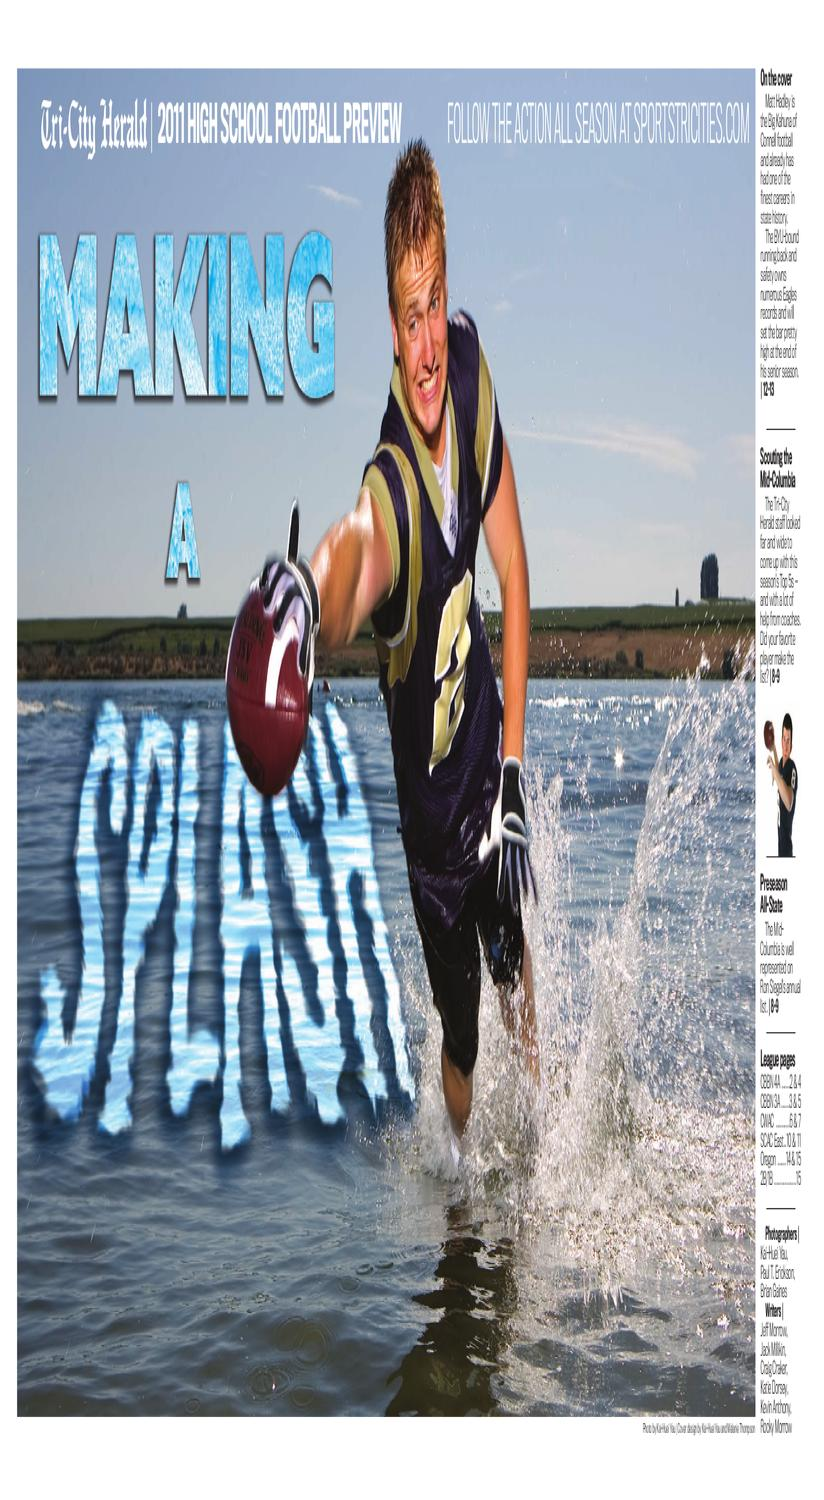 752f67ea 2011 Mid-Columbia High School Football preview by Tri-City Herald - issuu